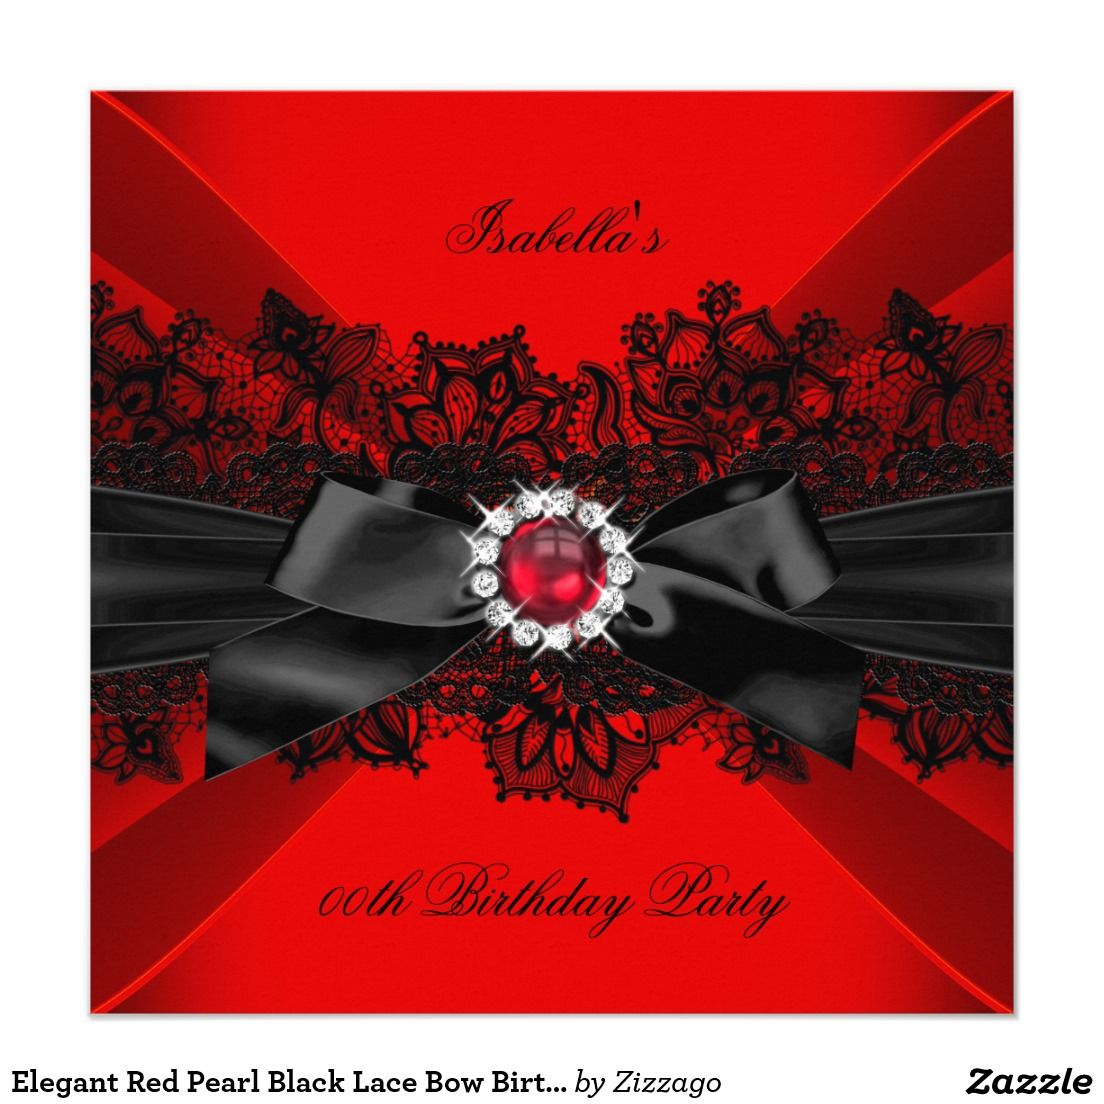 Elegant Red Pearl Black Lace Bow Birthday Party Invitation | Lace ...